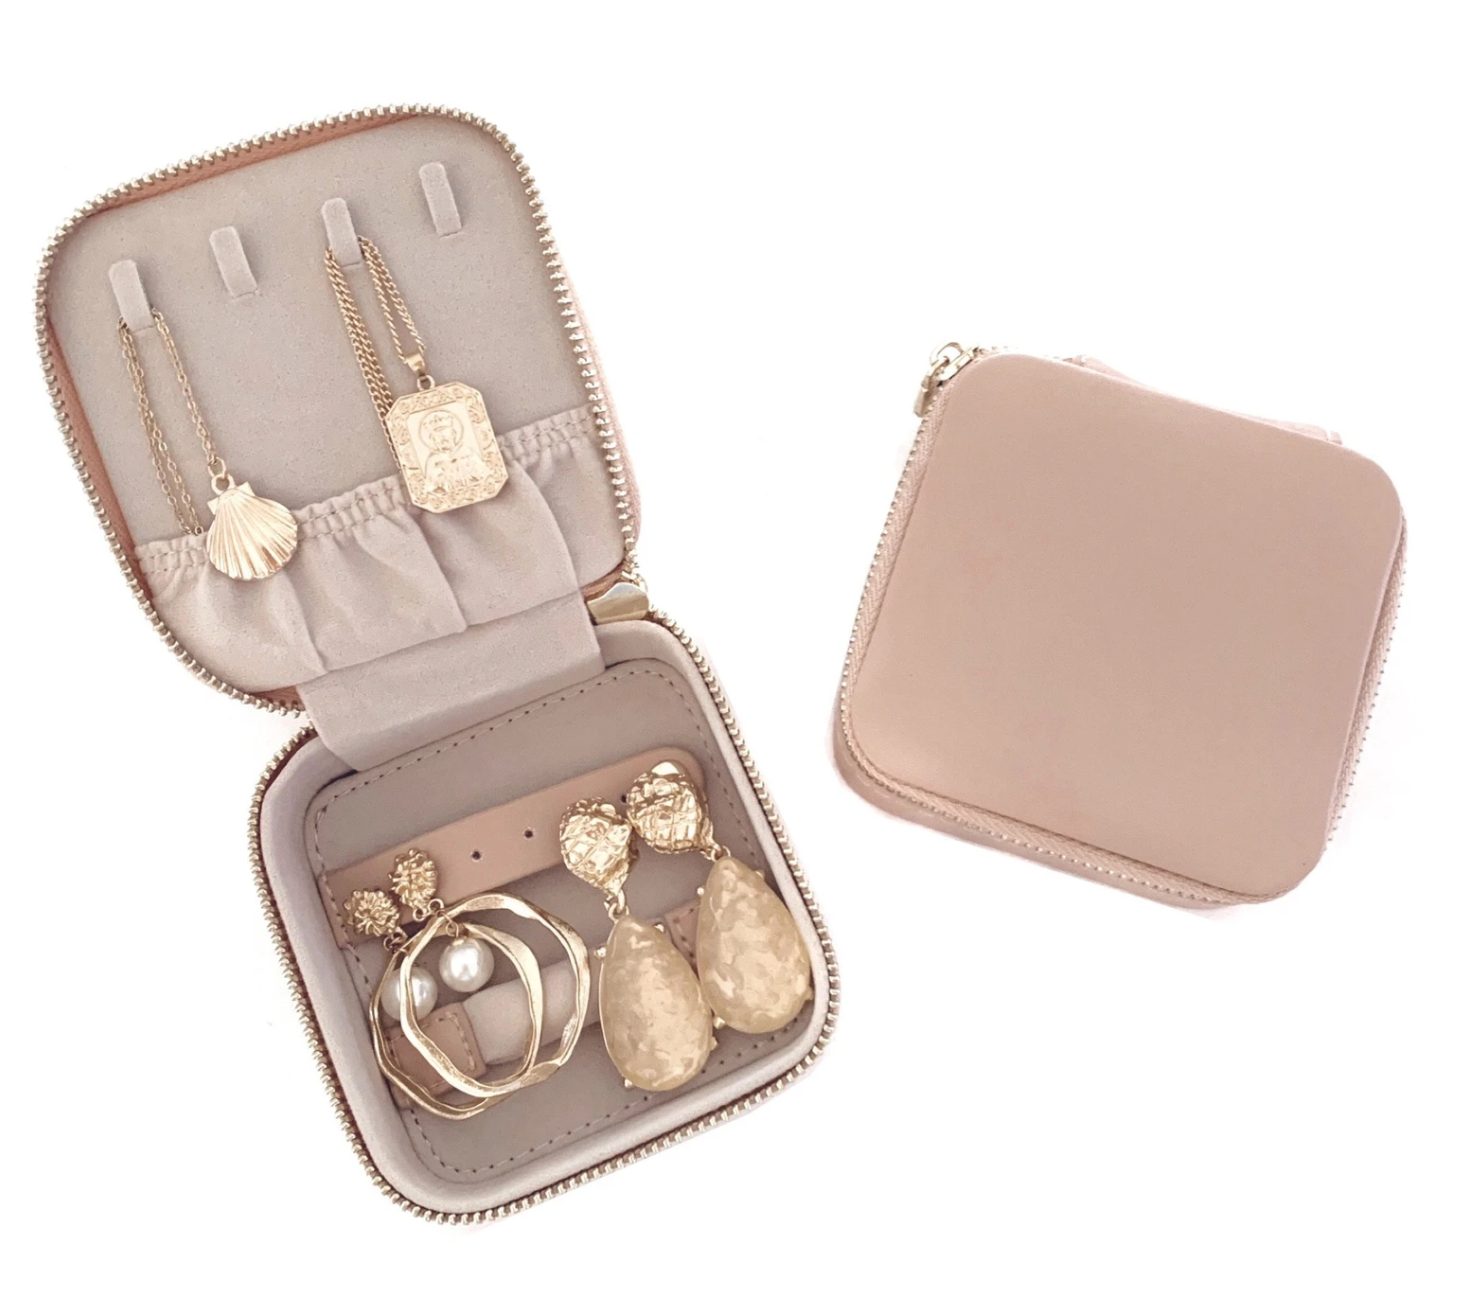 Leather Jewellery Case by JT Luxe